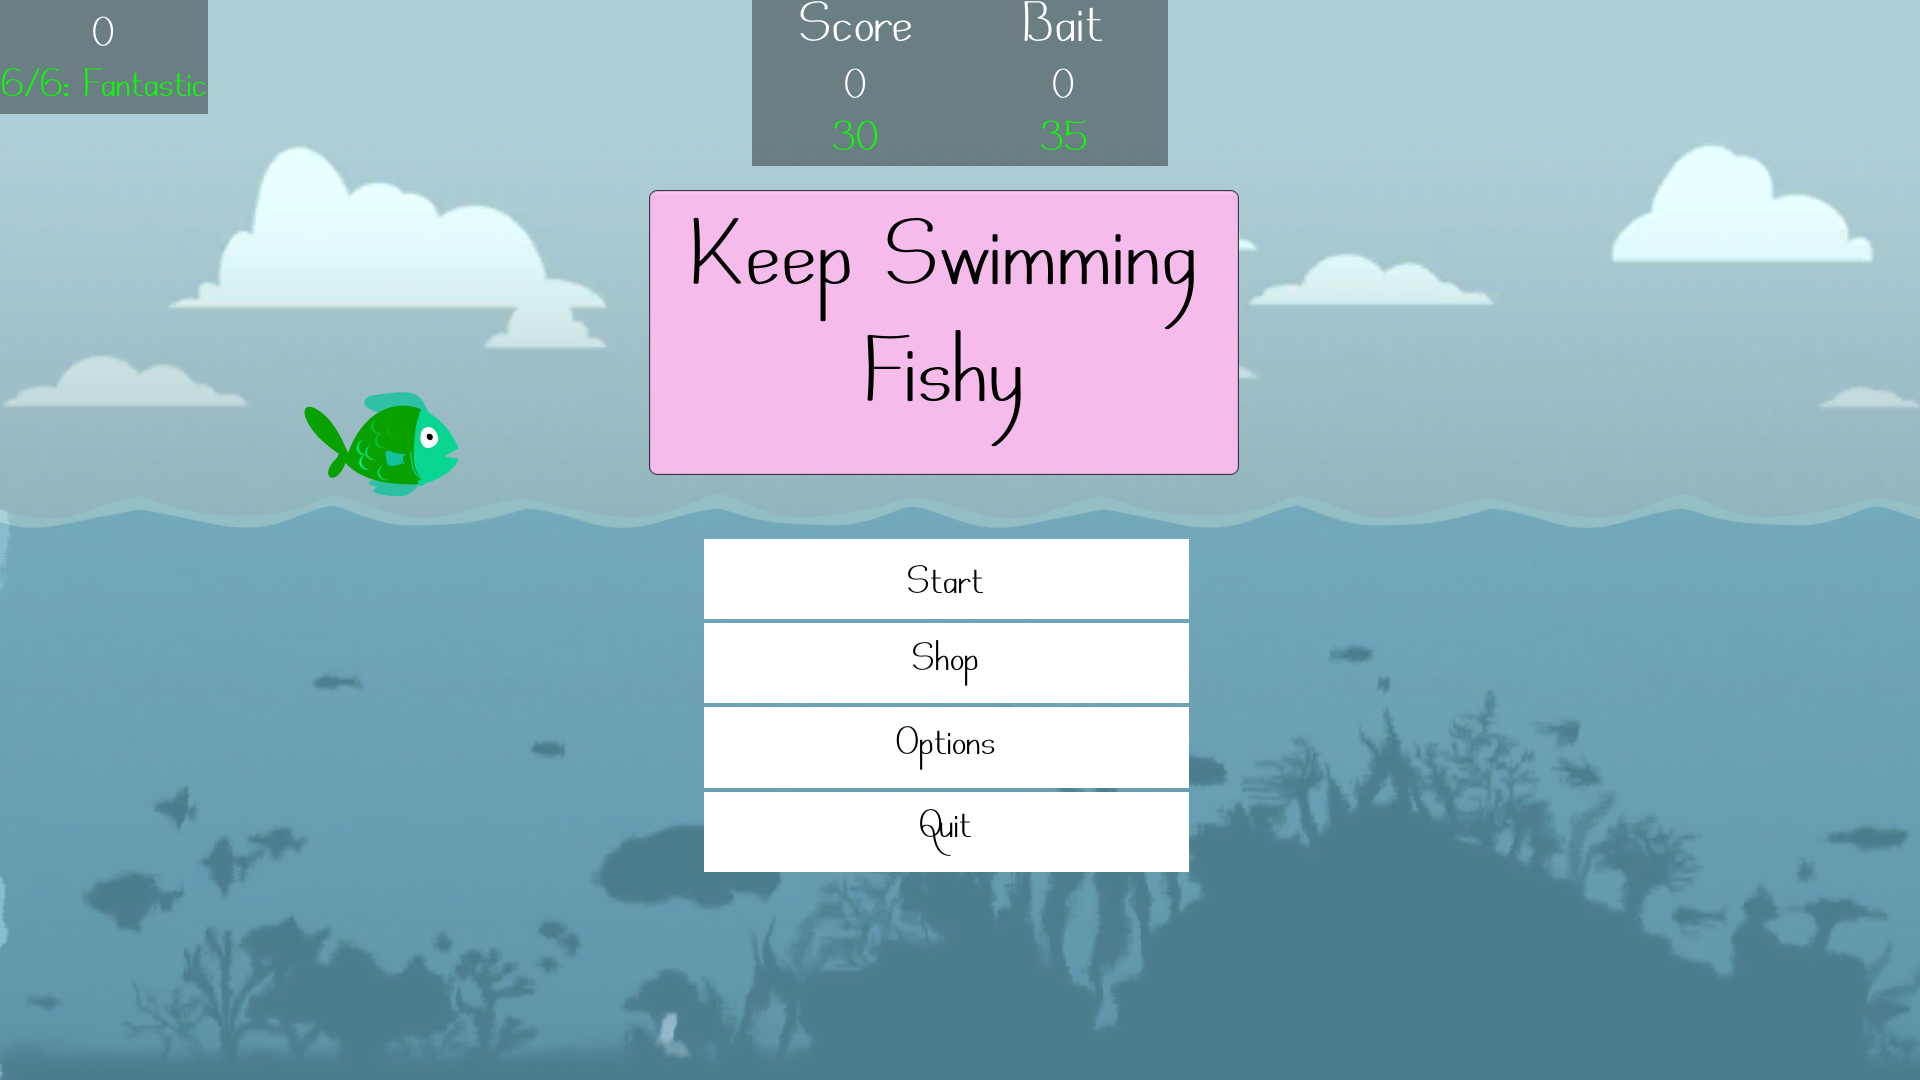 Keep Swimming Fishy